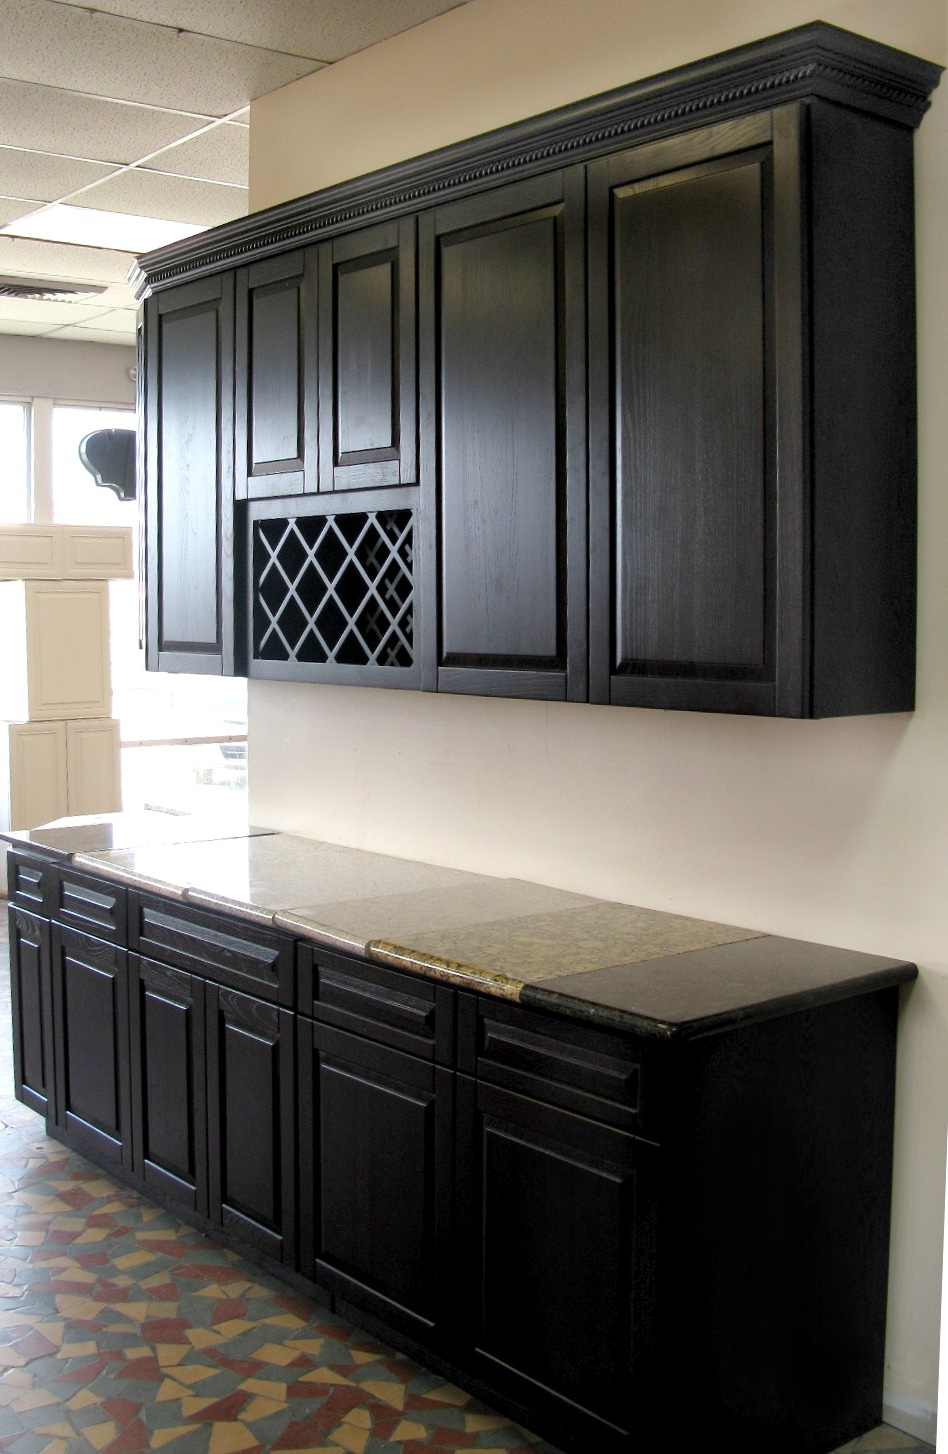 Cabinets for kitchen photos black kitchen cabinets for Black kitchen cabinets